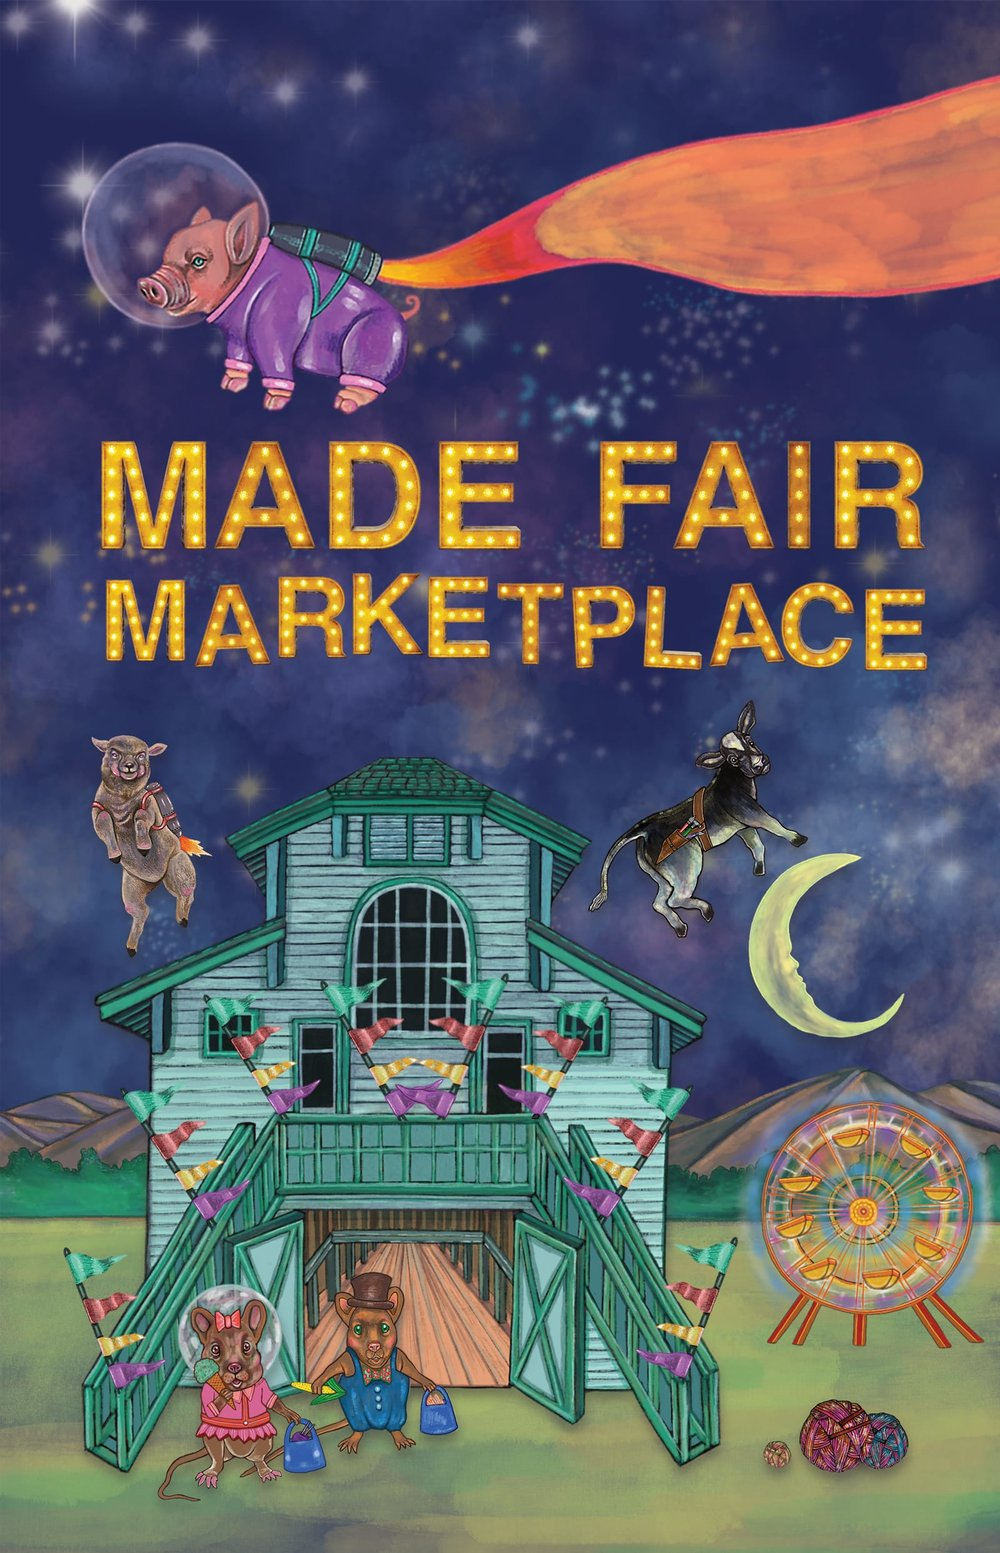 2018 Handmade Marketplace Poster by Courtney Blazon